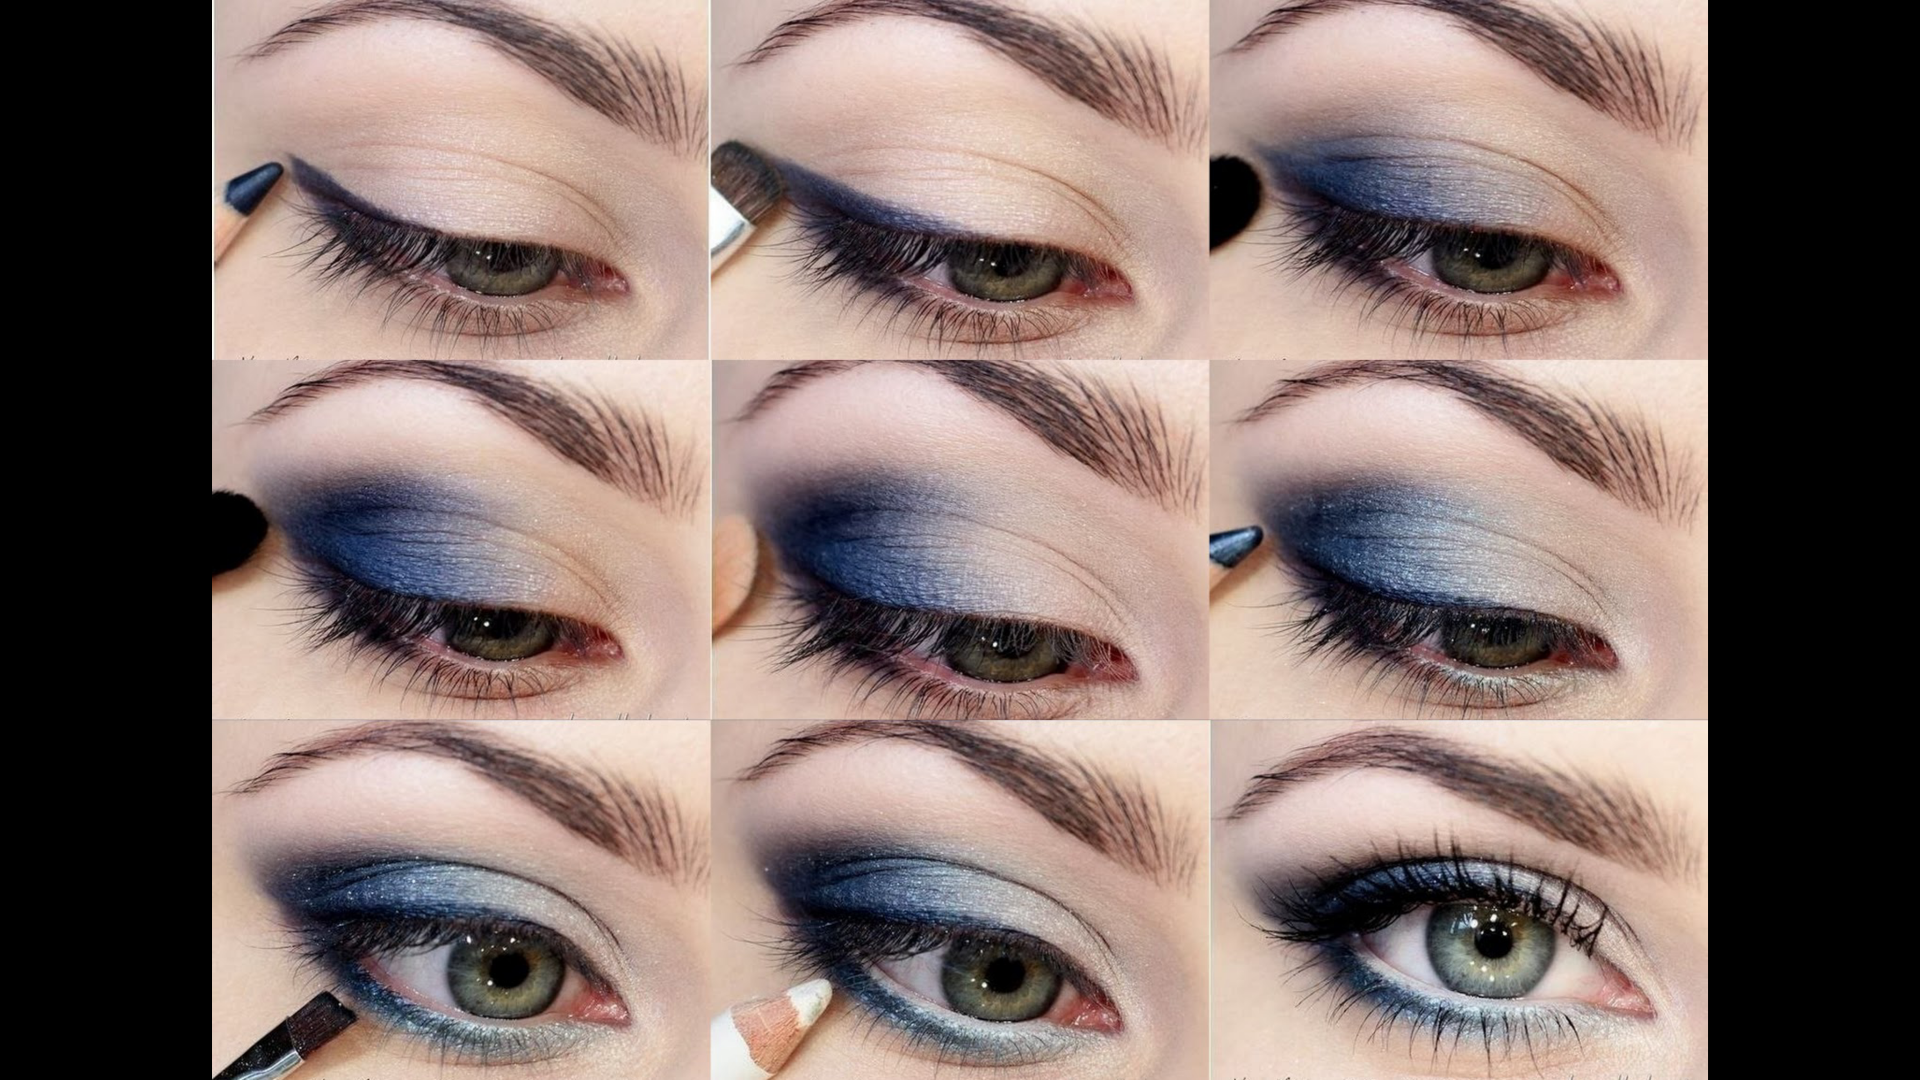 Makeup tips for blue